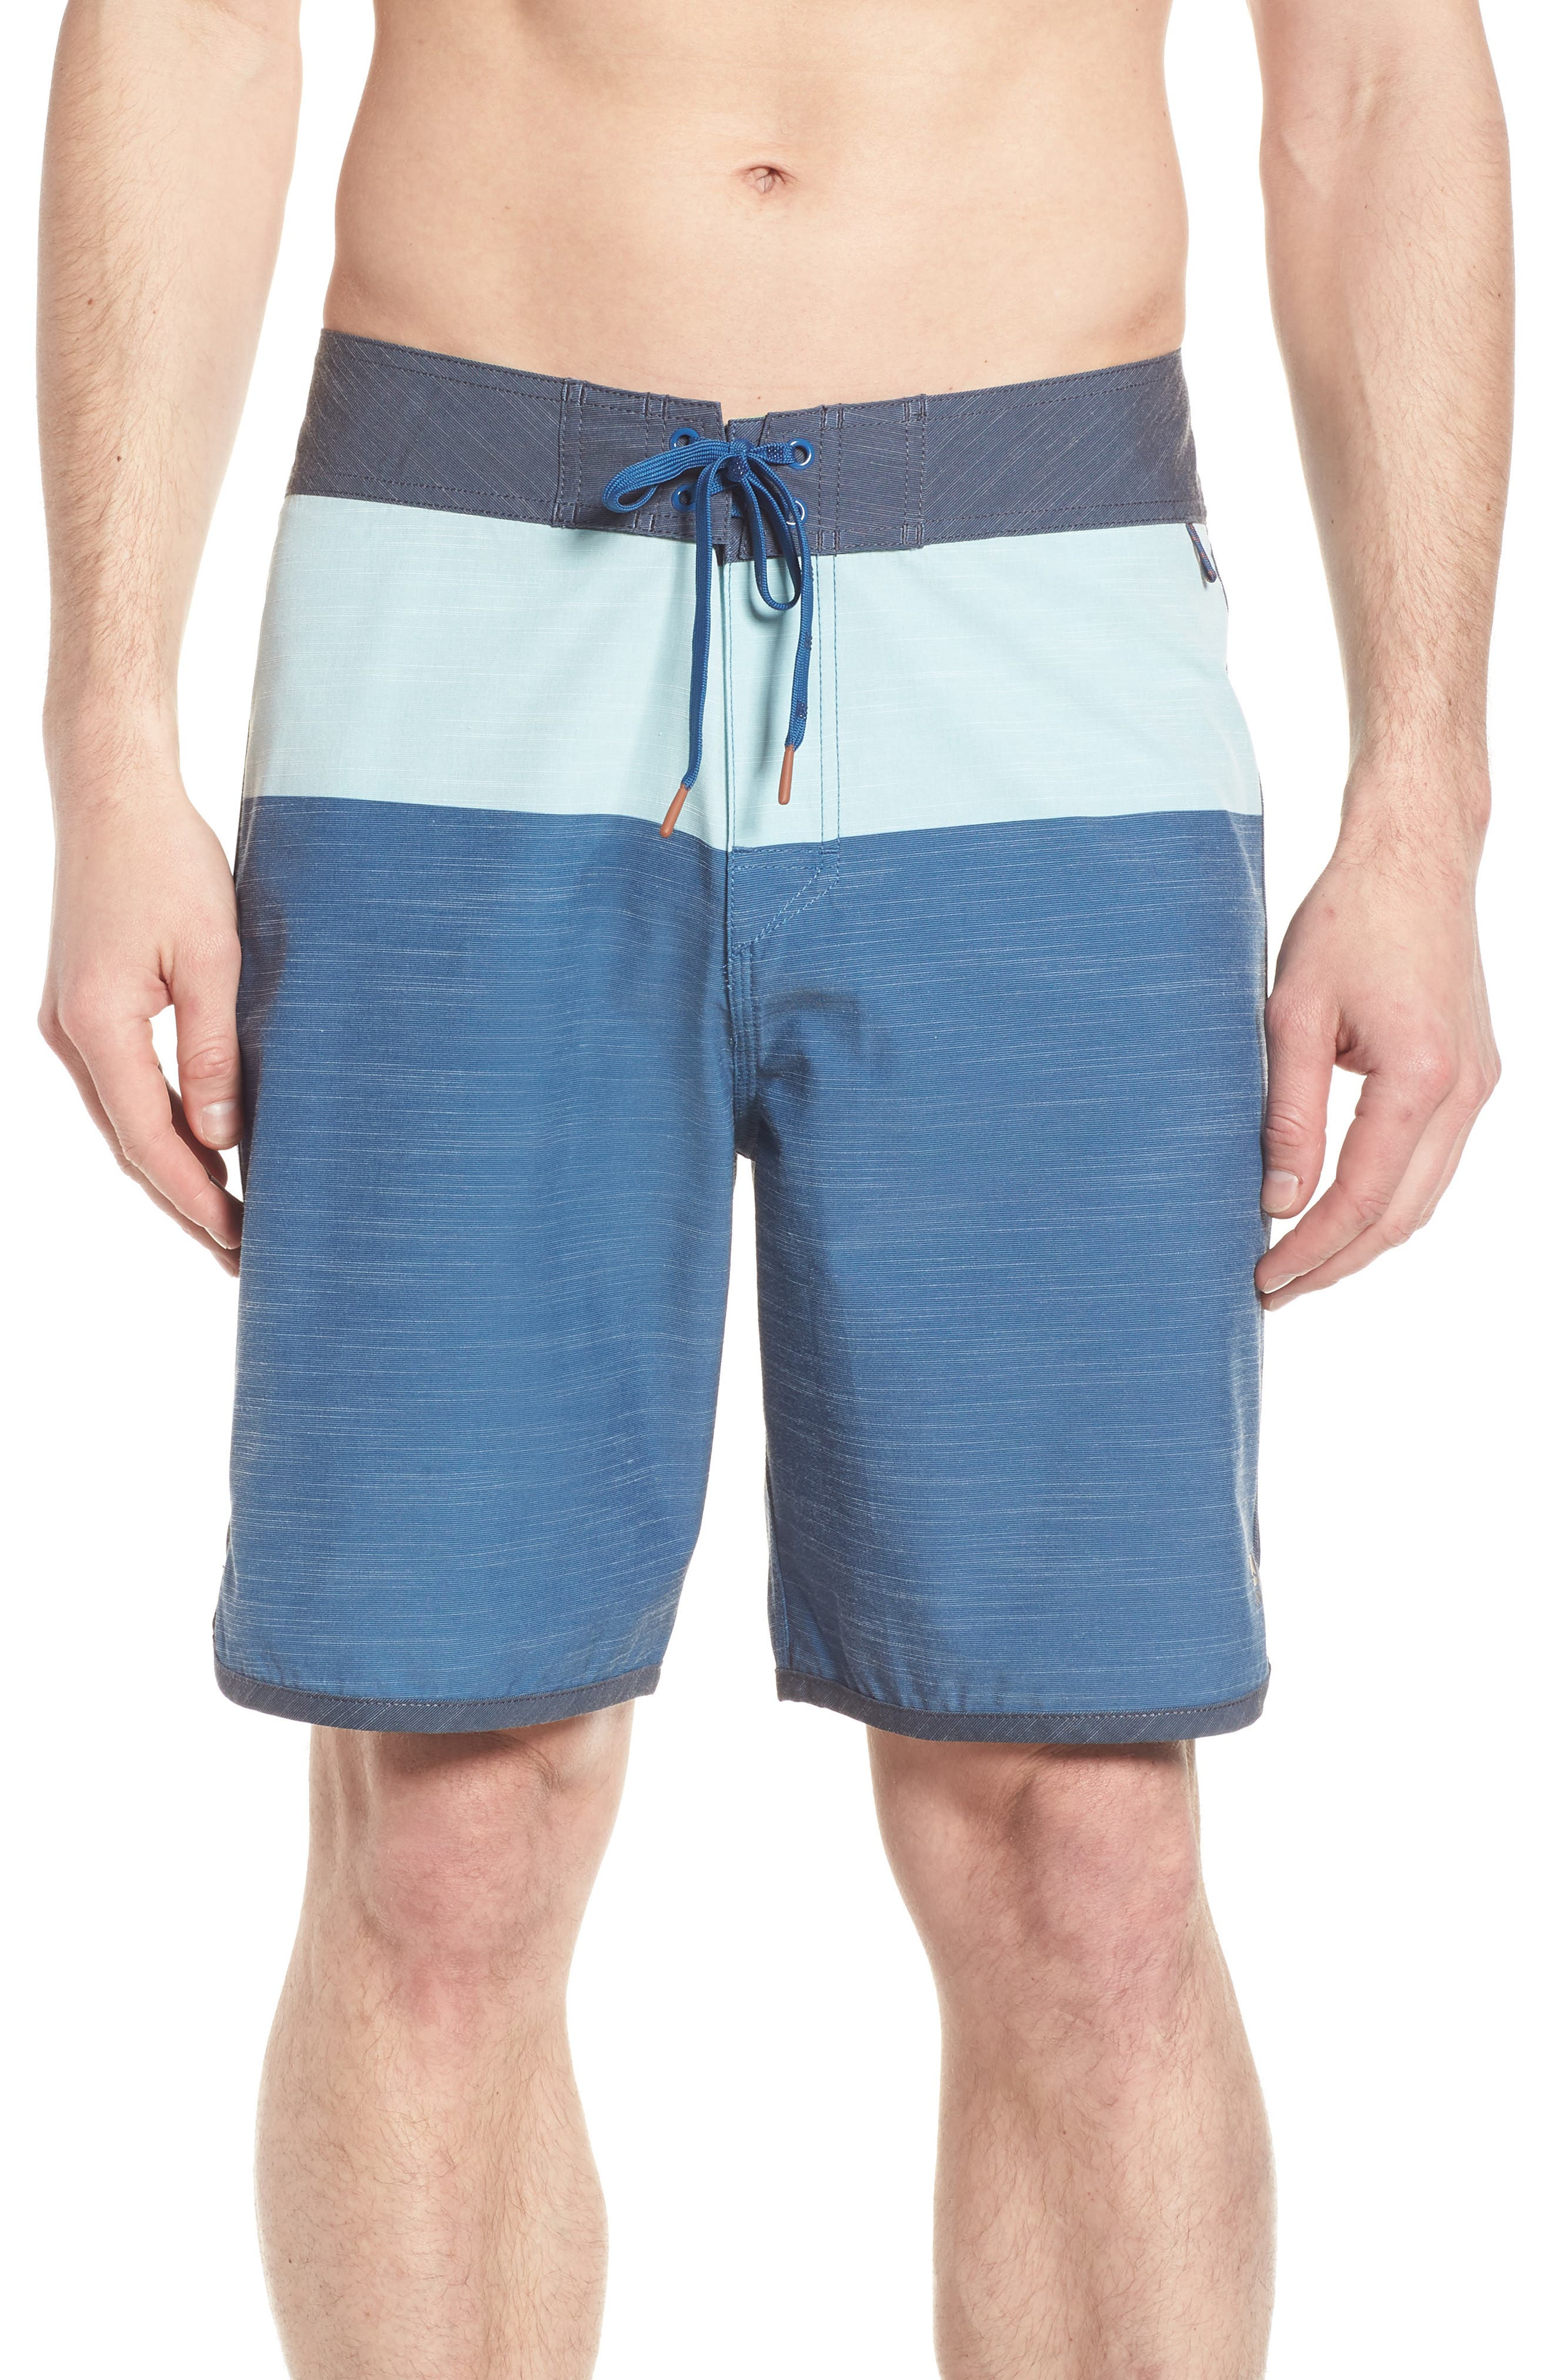 Beachcomber Board Shorts,                         Main,                         color, Ocean Blue